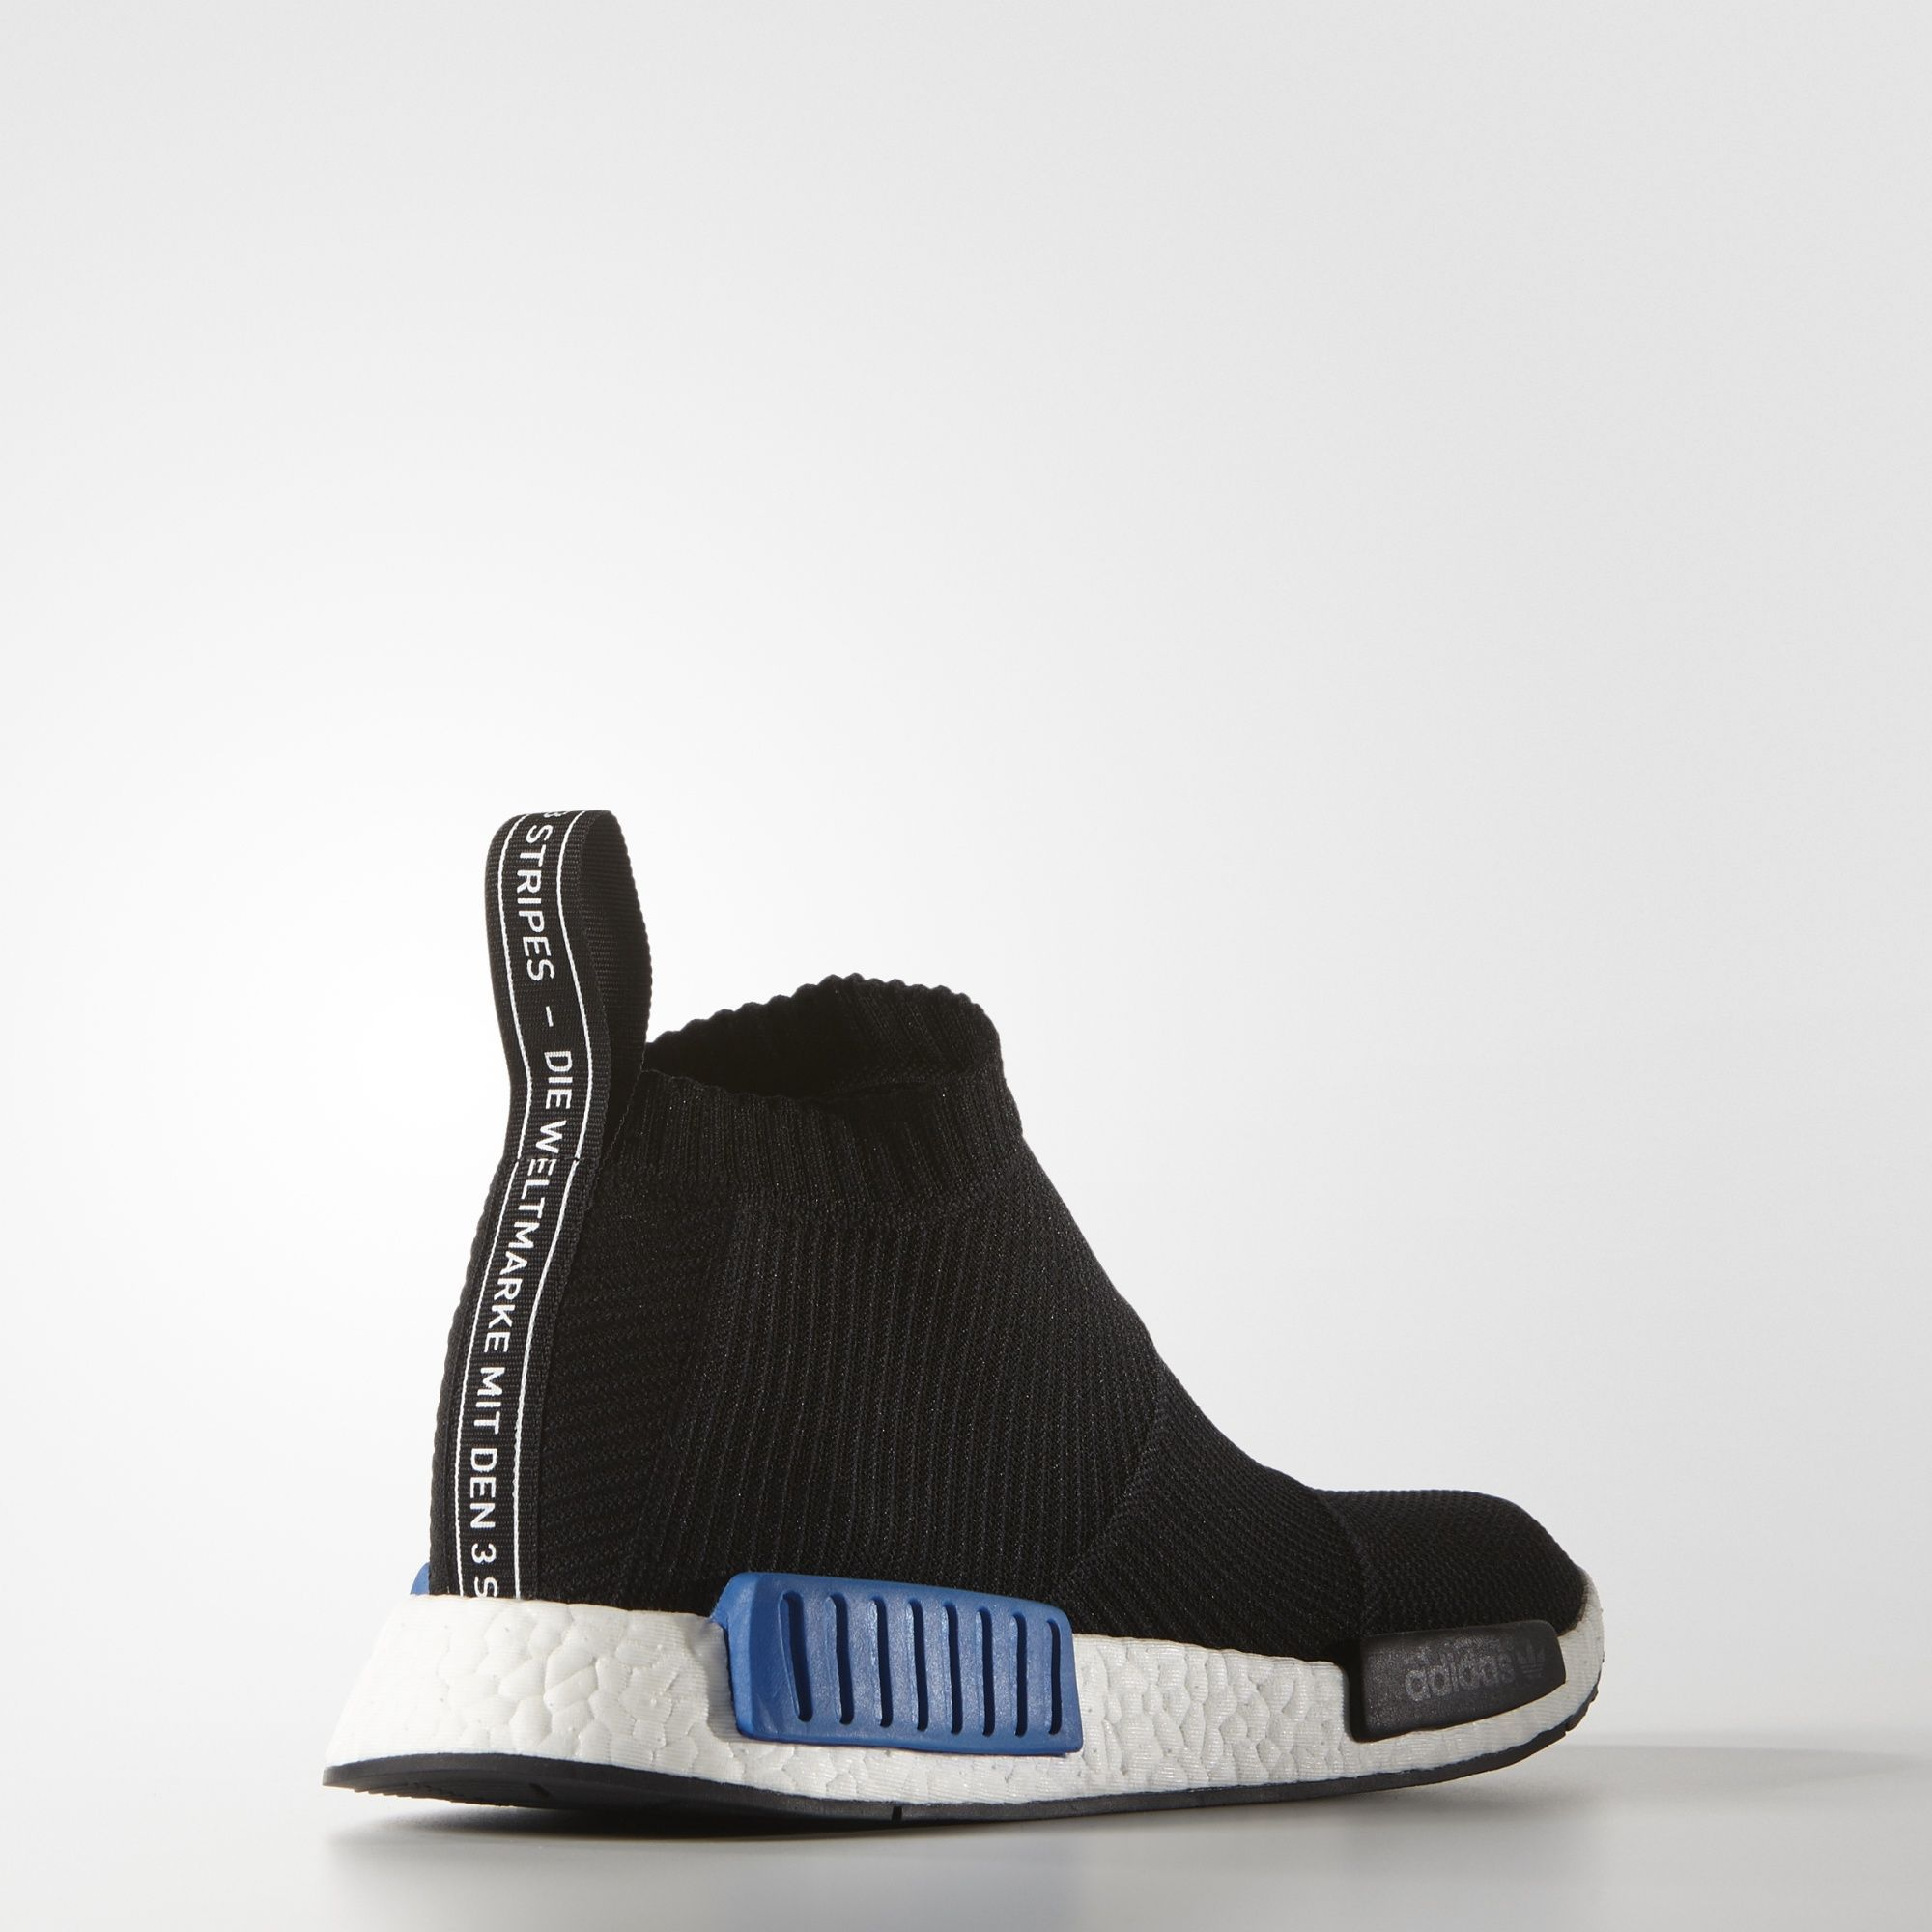 Adidas White OG NMDs AND Black City Sock NMDs drop on July 15! Best way